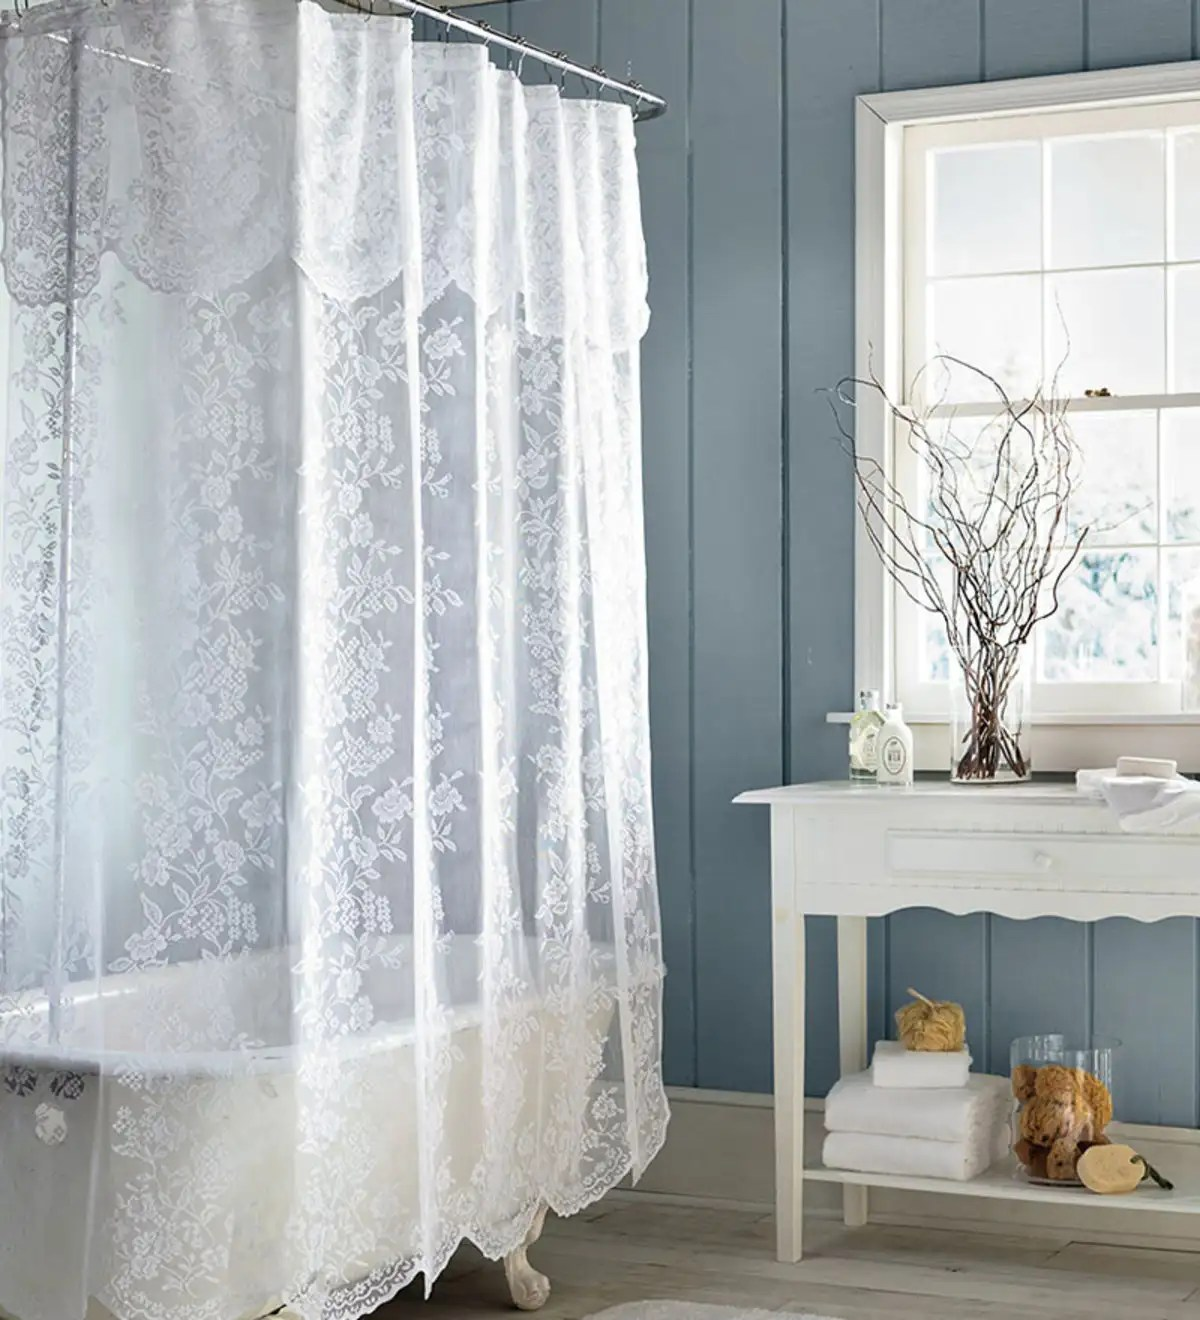 easy care polyester somerset lace shower curtain